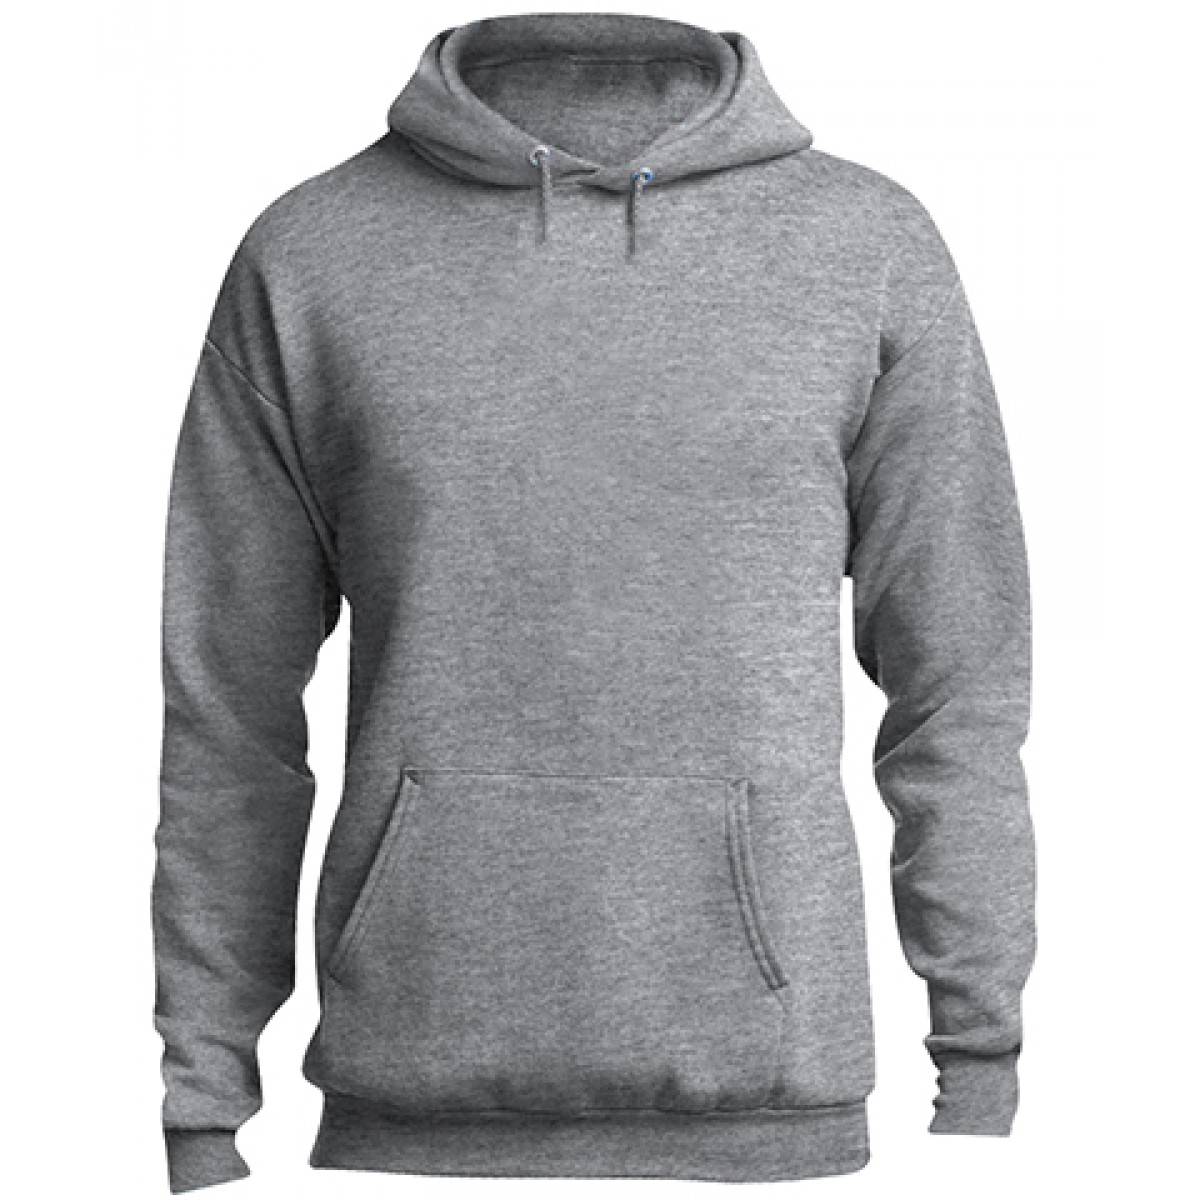 Classic Pullover Hooded Sweatshirt-Athletic Heather-M